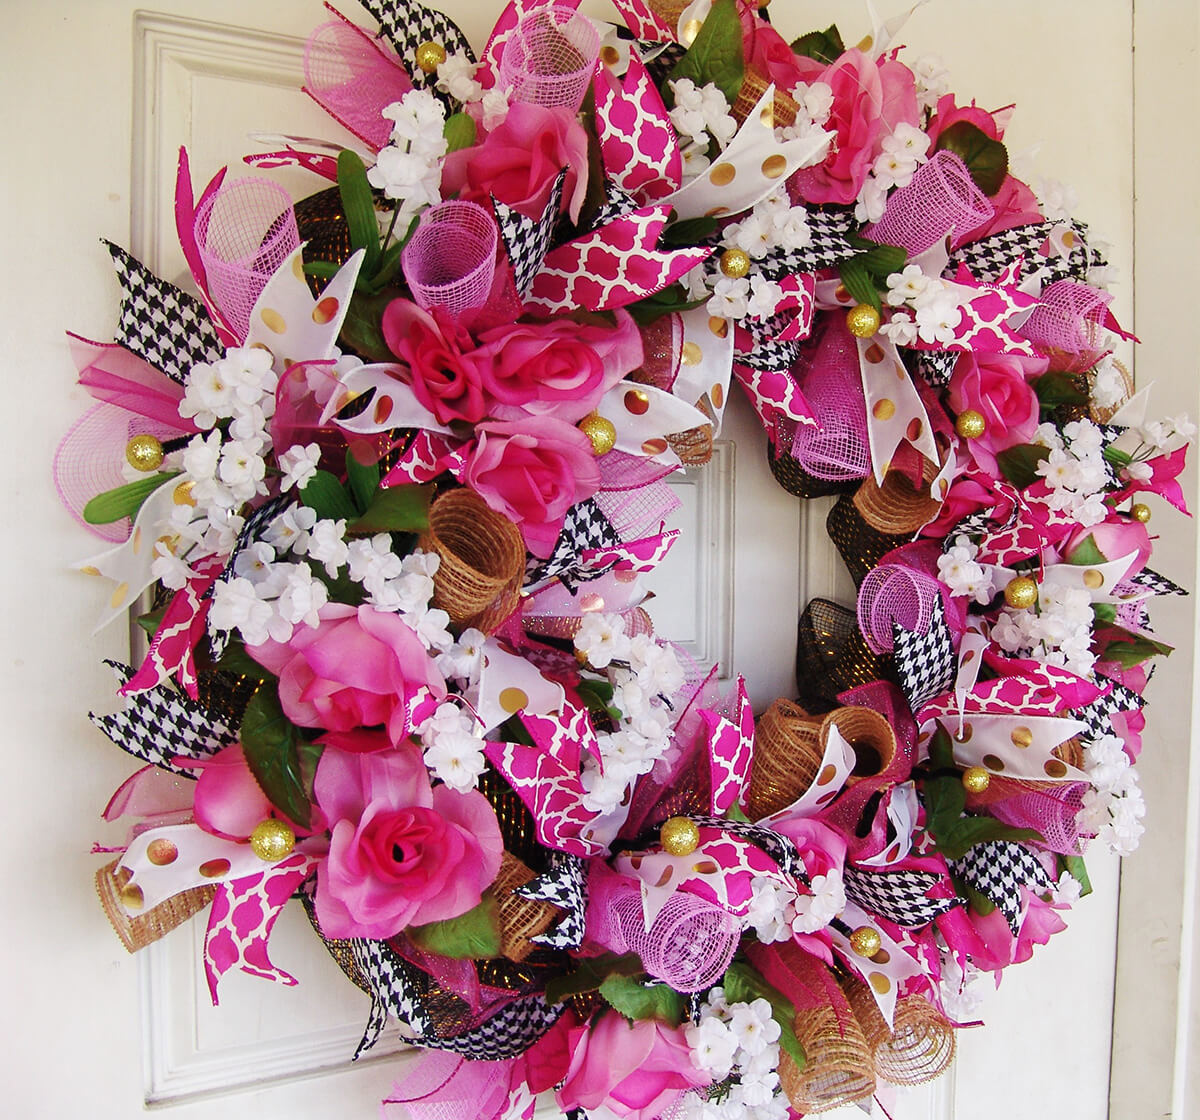 Rose Ribbons and Pink Roses